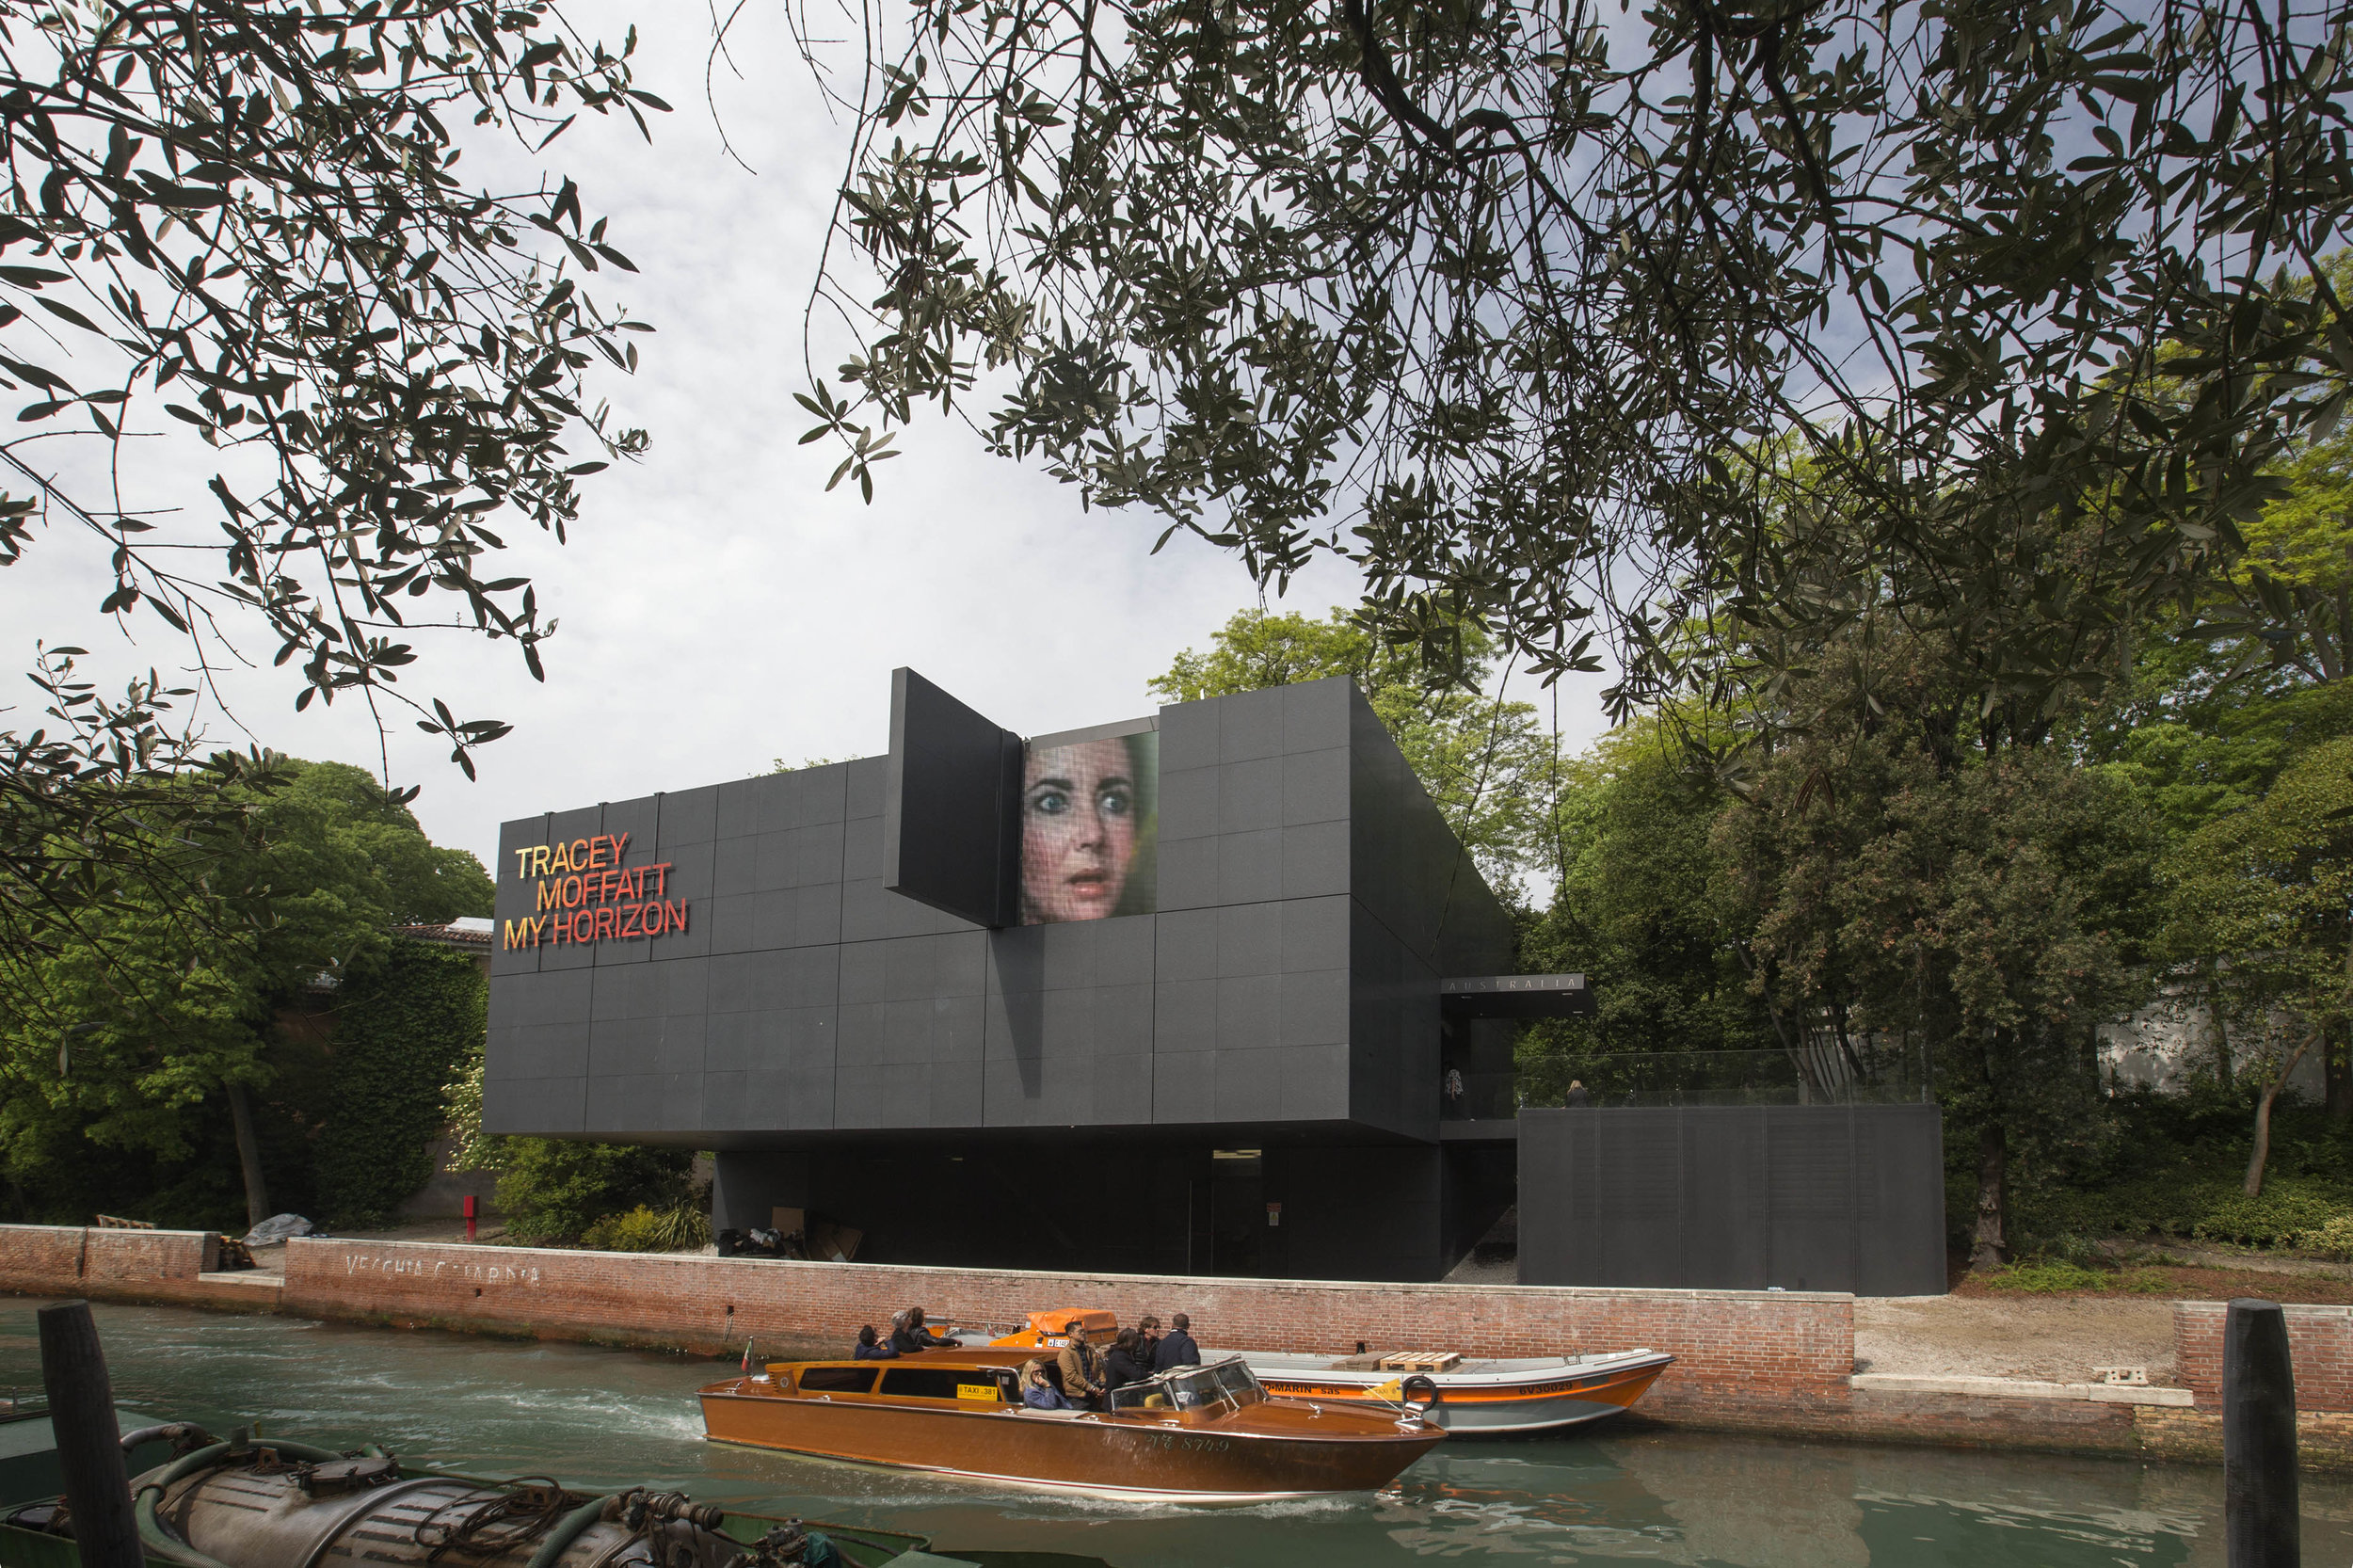 Naomi Milgrom was the commissioner of the Australian Pavilion at the Venice Biennale 2017, represented by Tracey Moffatt. Photo by John Gollings.